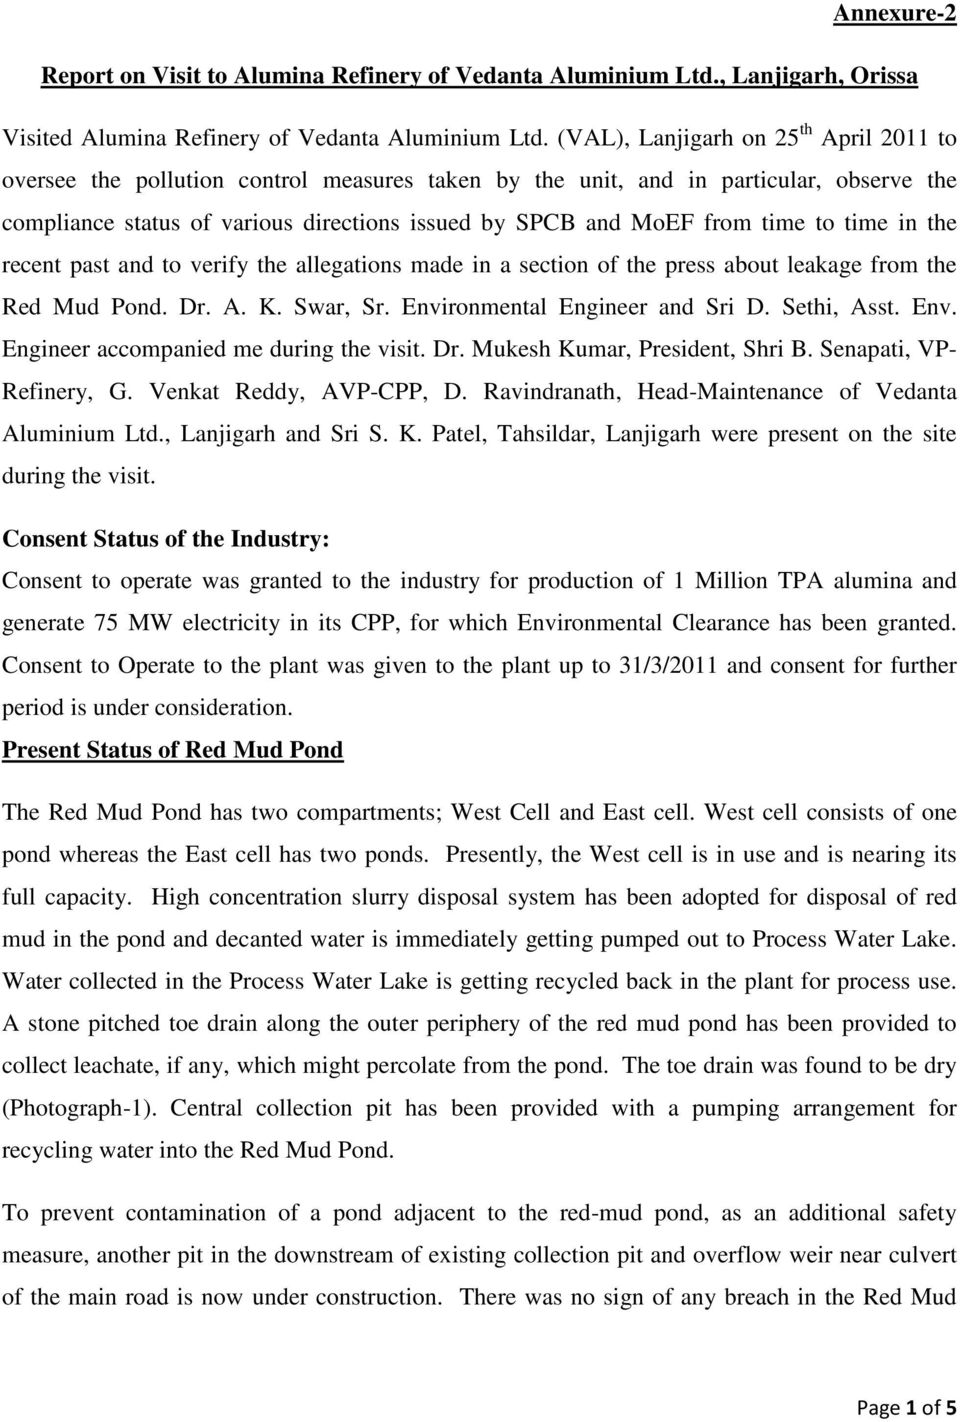 time to time in the recent past and to verify the allegations made in a section of the press about leakage from the Red Mud Pond. Dr. A. K. Swar, Sr. Environmental Engineer and Sri D. Sethi, Asst.